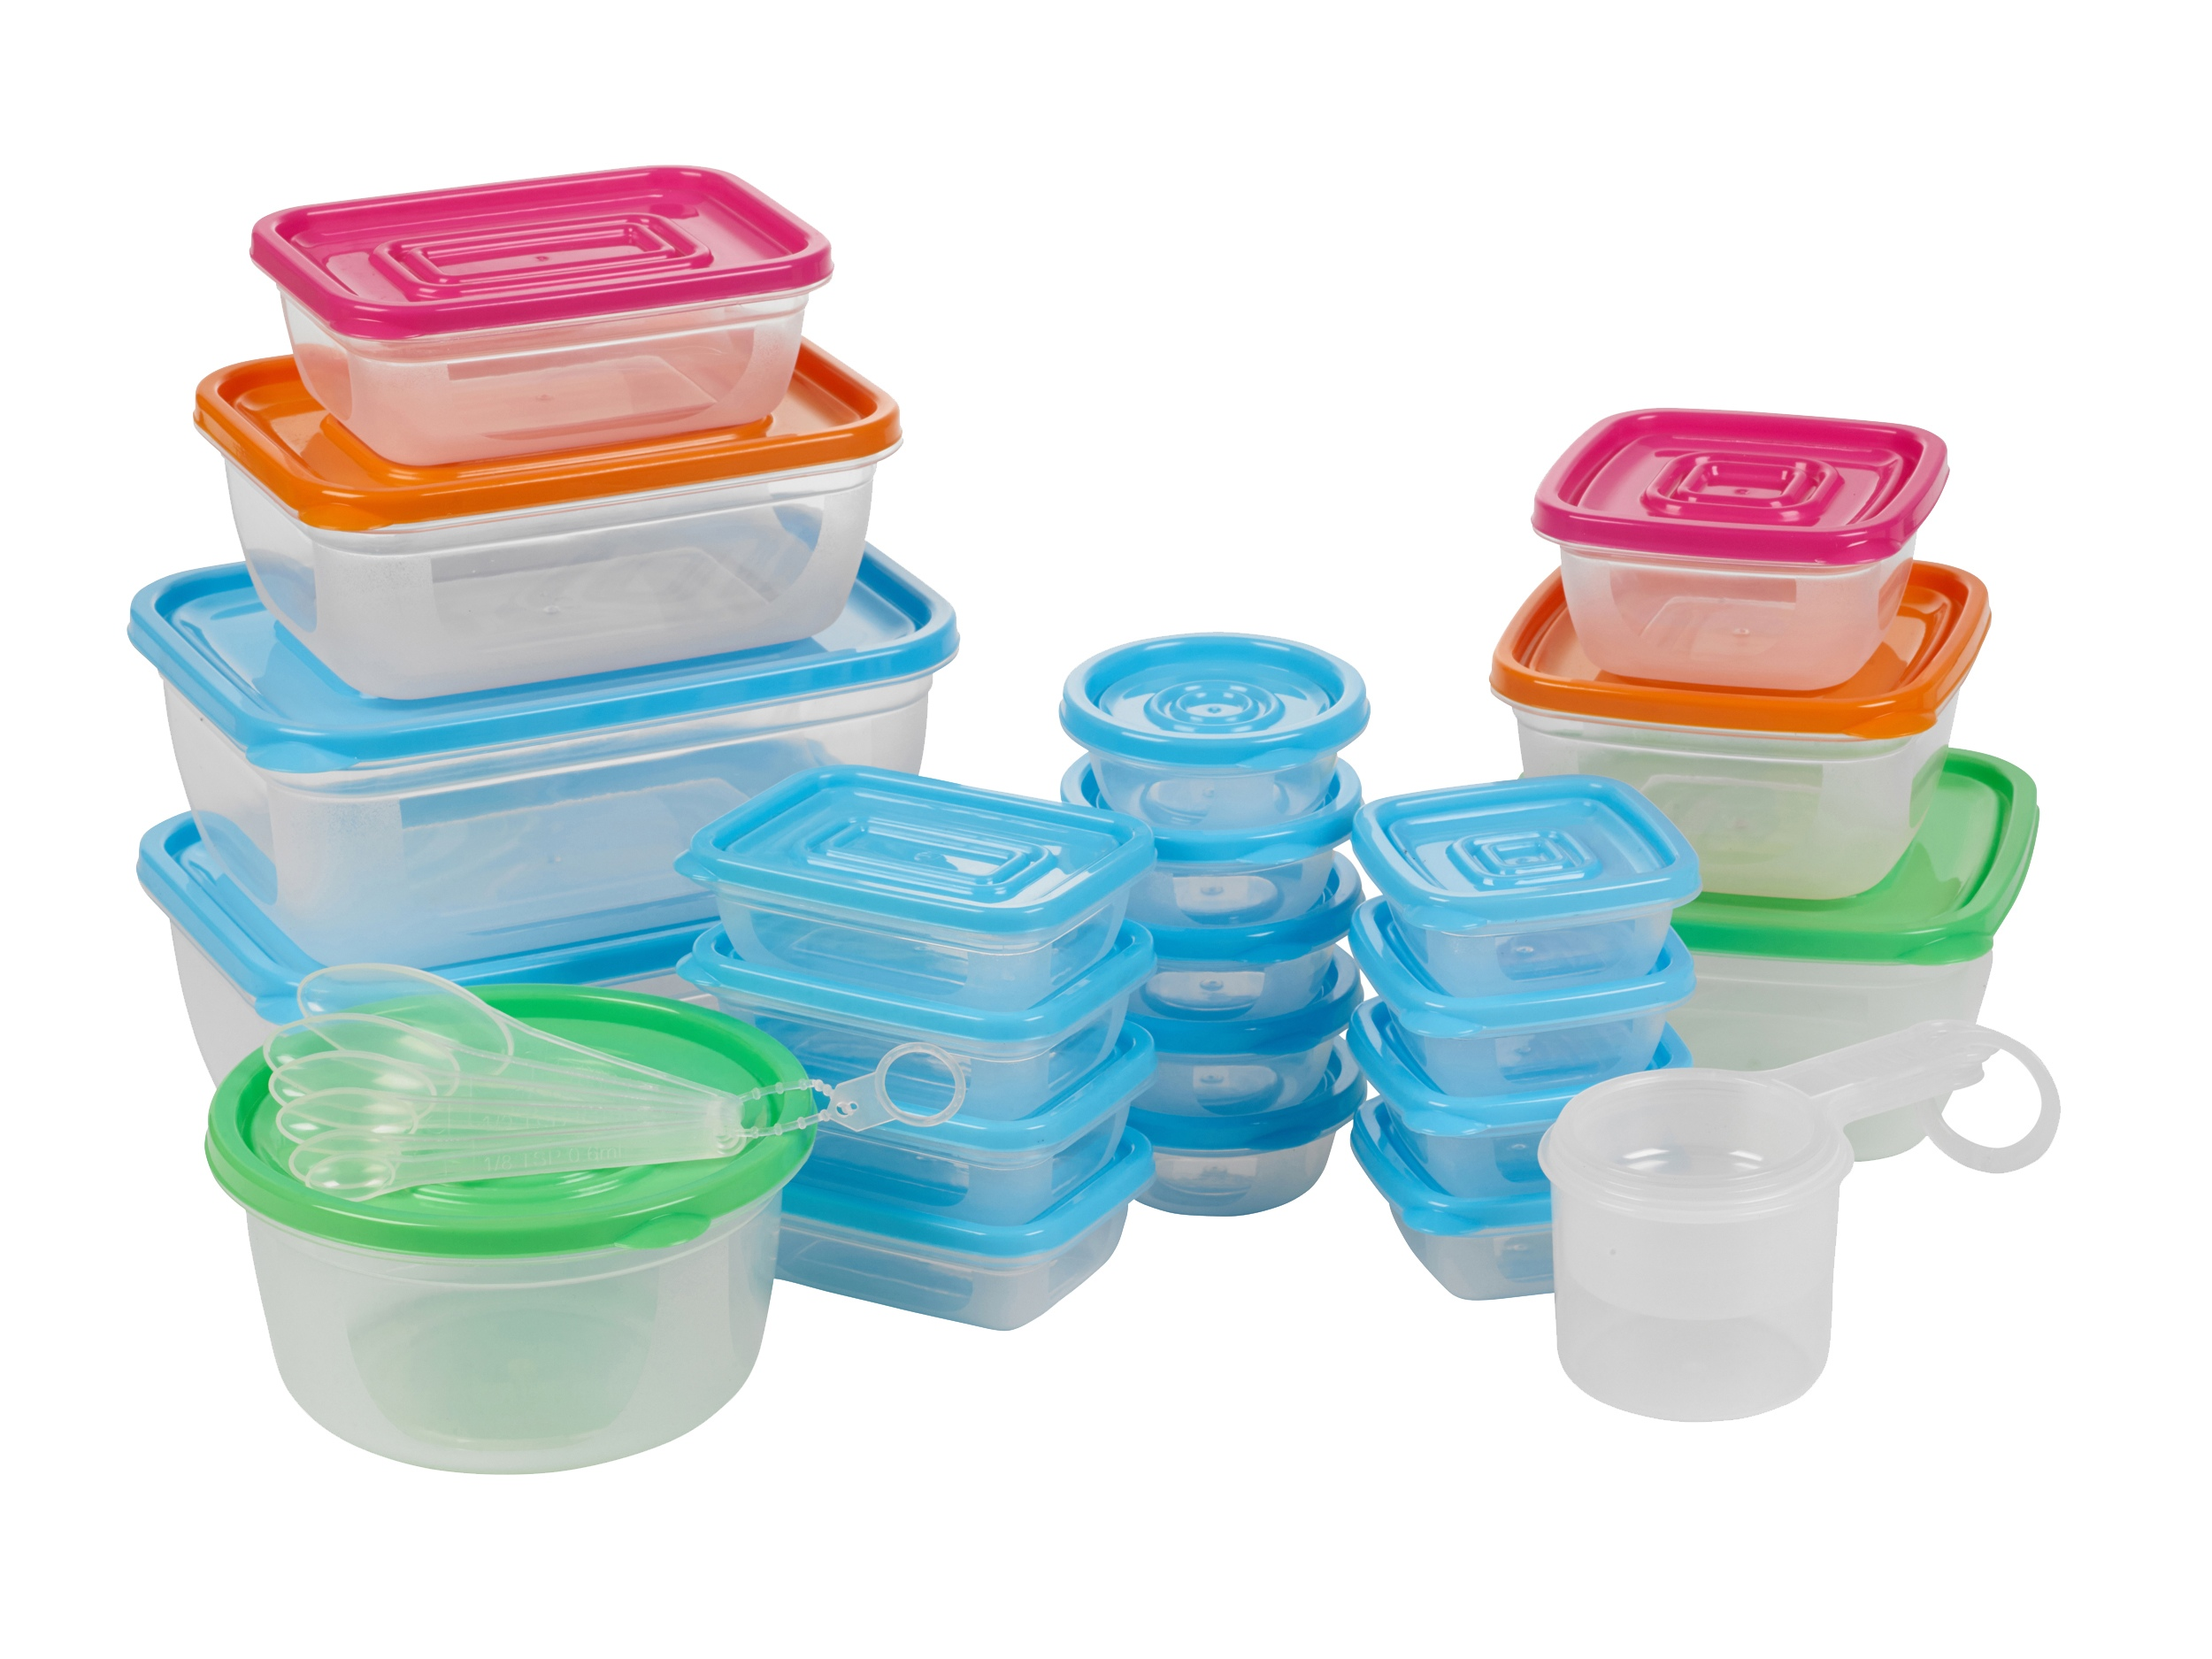 Immagini relative a food storage containers